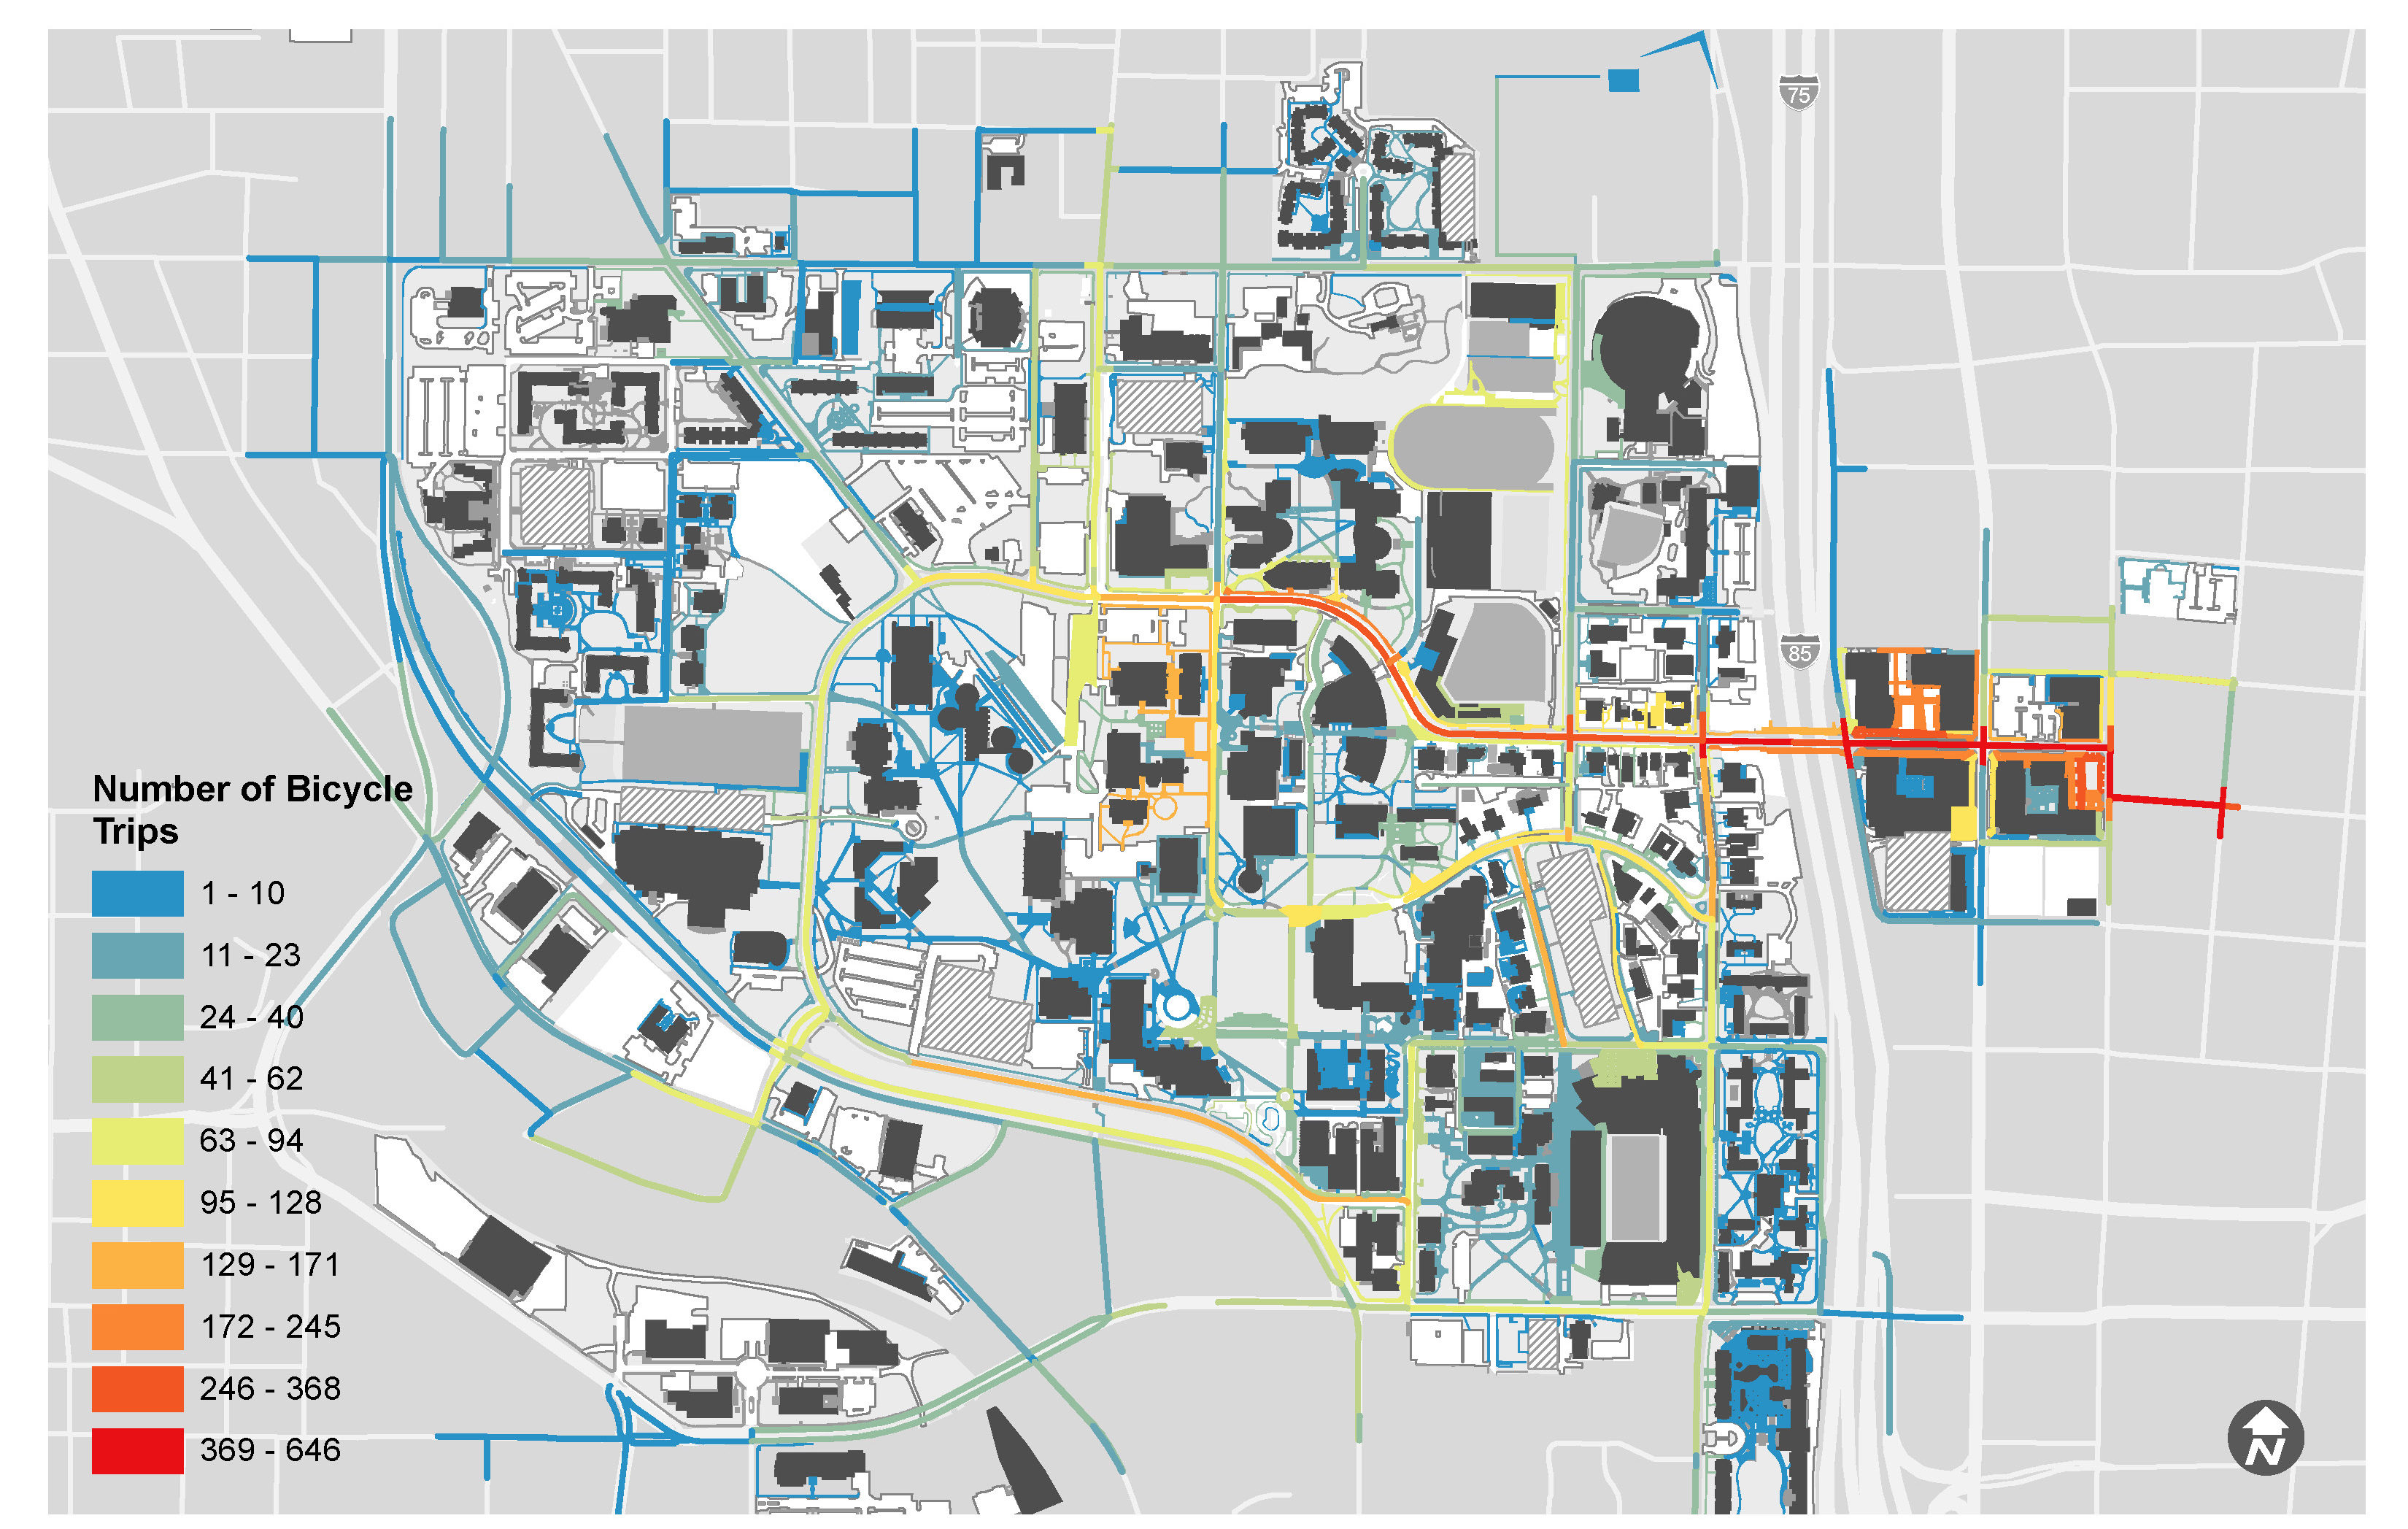 Map Of Georgia Tech Campus.Georgia Tech Campus Bicycle Master Plan Alta Planning Design